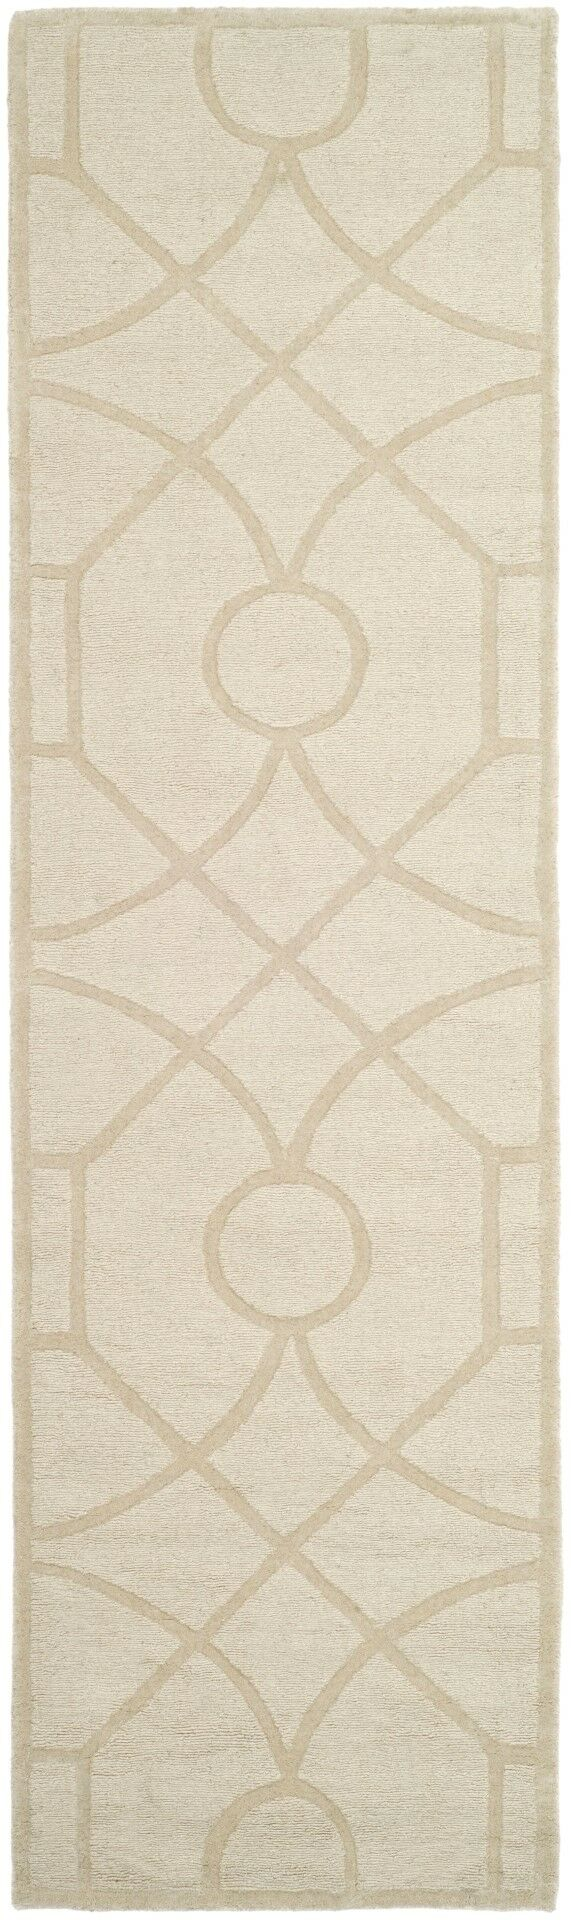 Martha Stewart Fretwork Hand Loomed Beige Area Rug Rug Size: Rectangle 8' x 10'